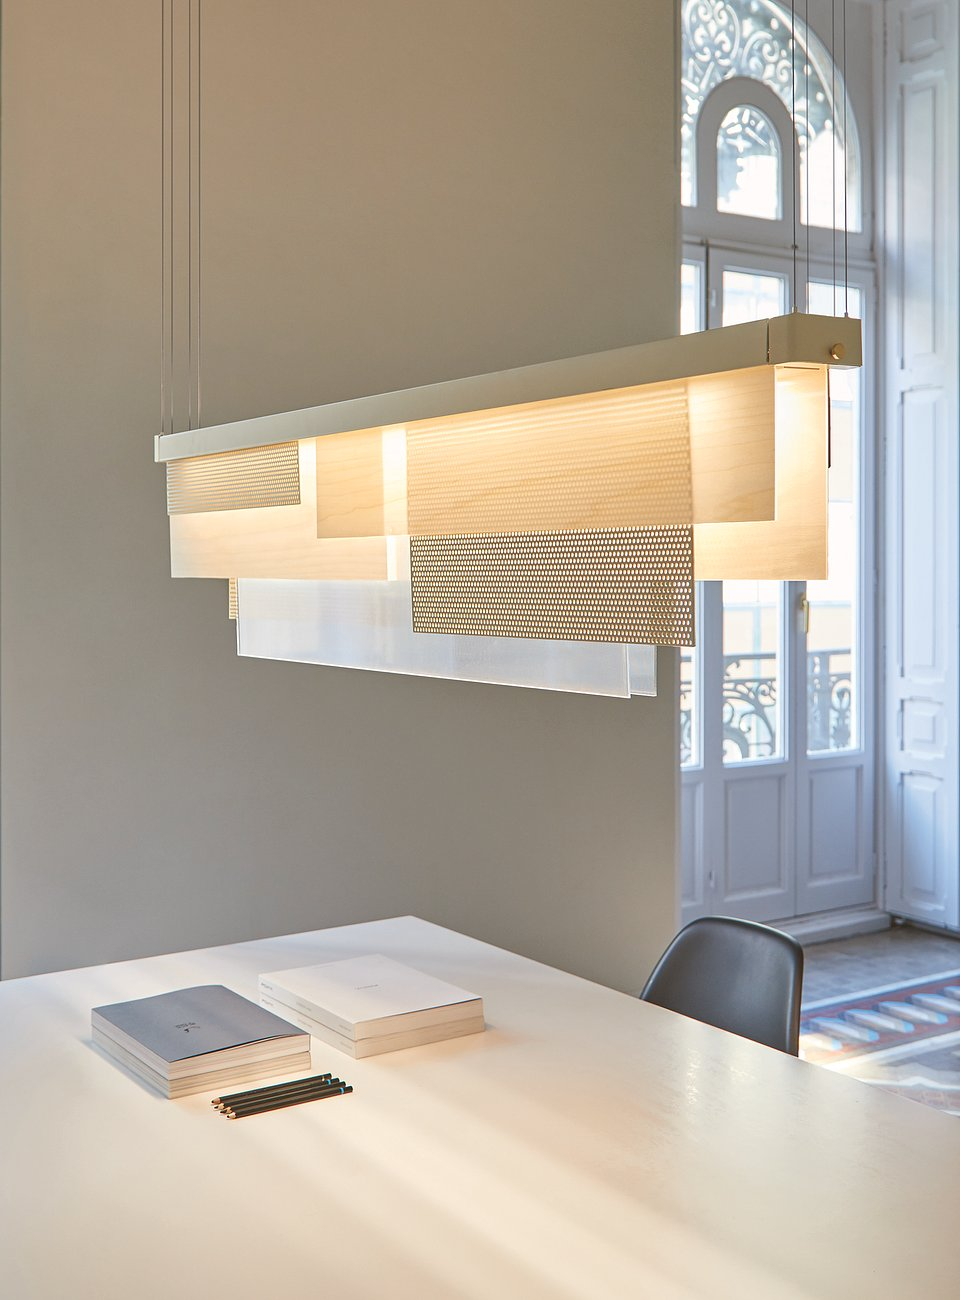 ESTUDIHAC_Skyline_Collection (6).jpg